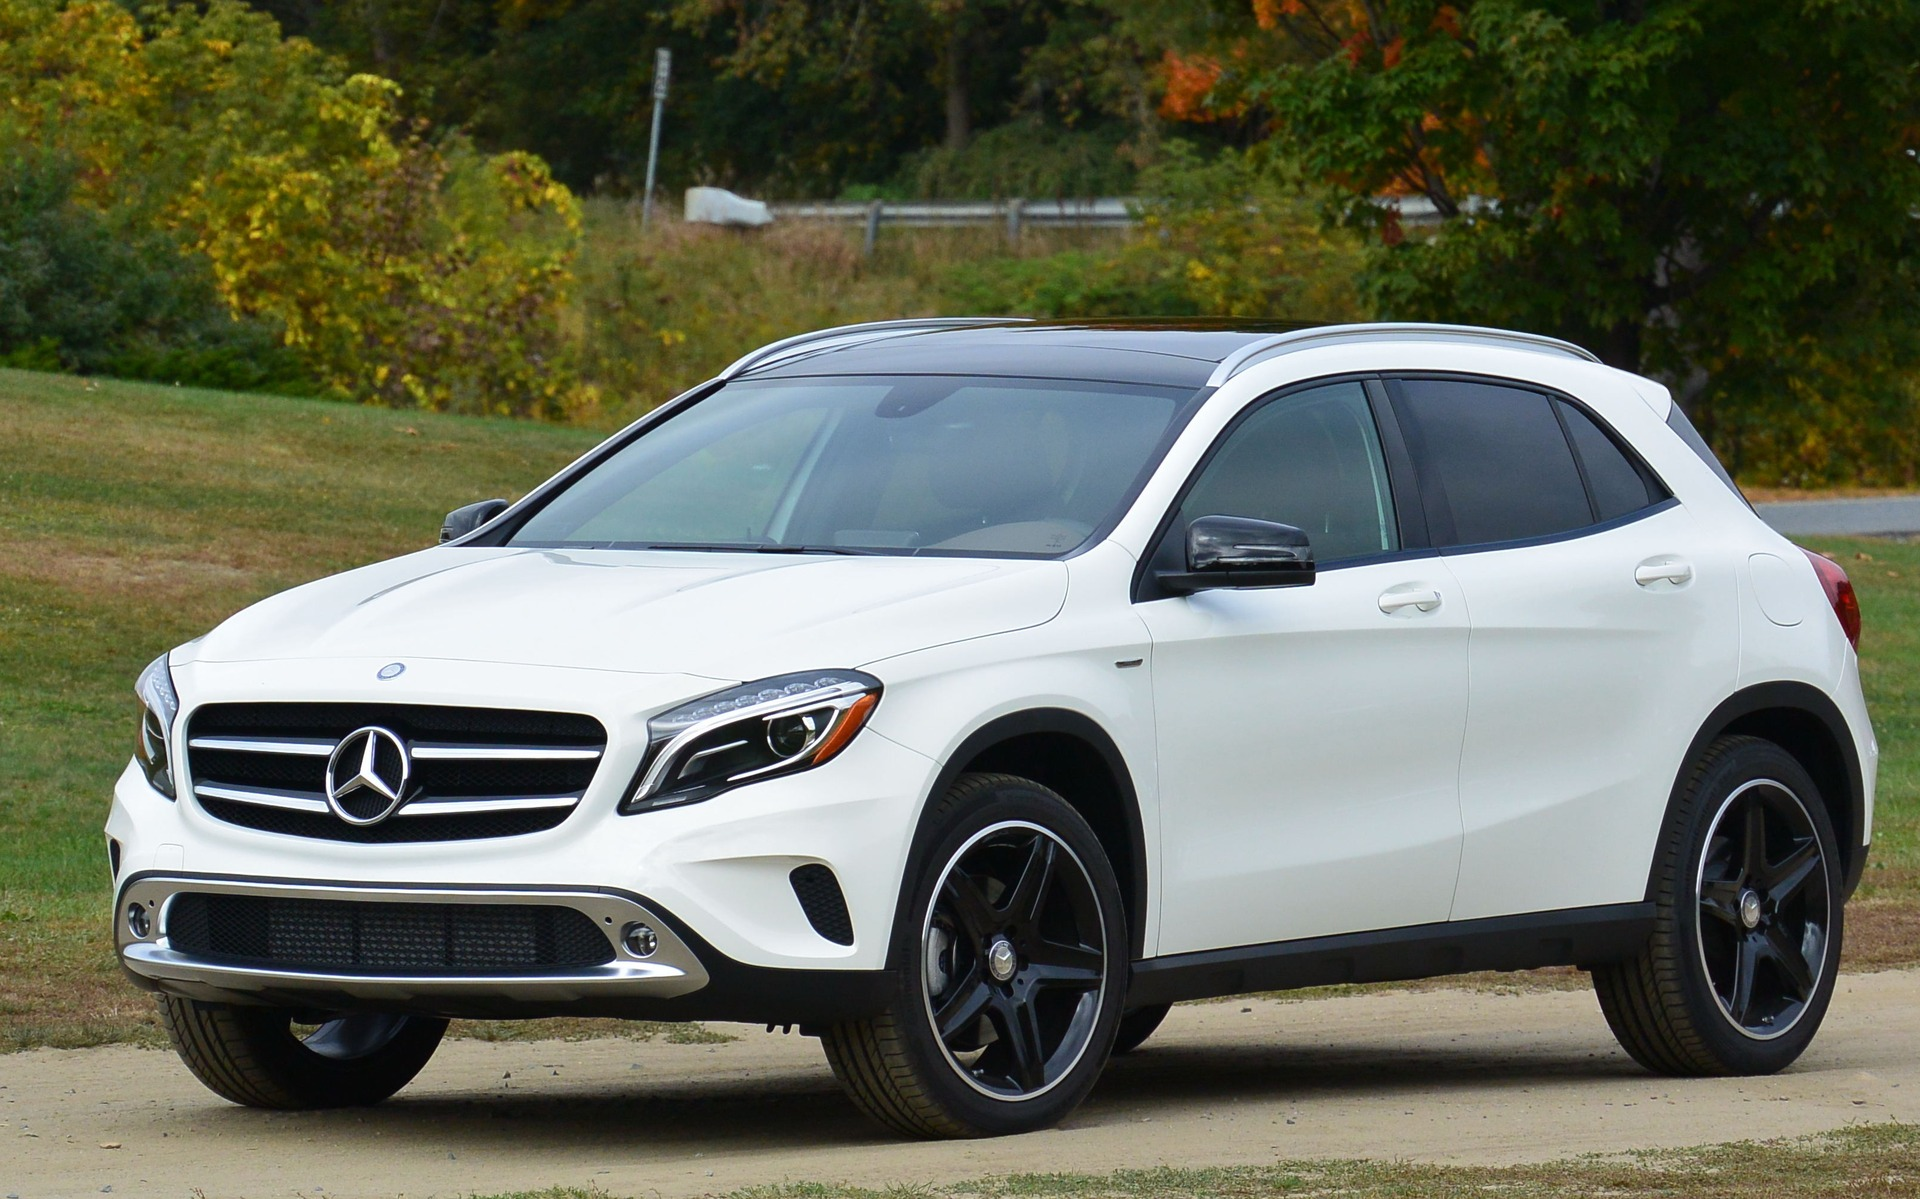 2015 mercedes benz gla practical or sporty review for Sporty mercedes benz